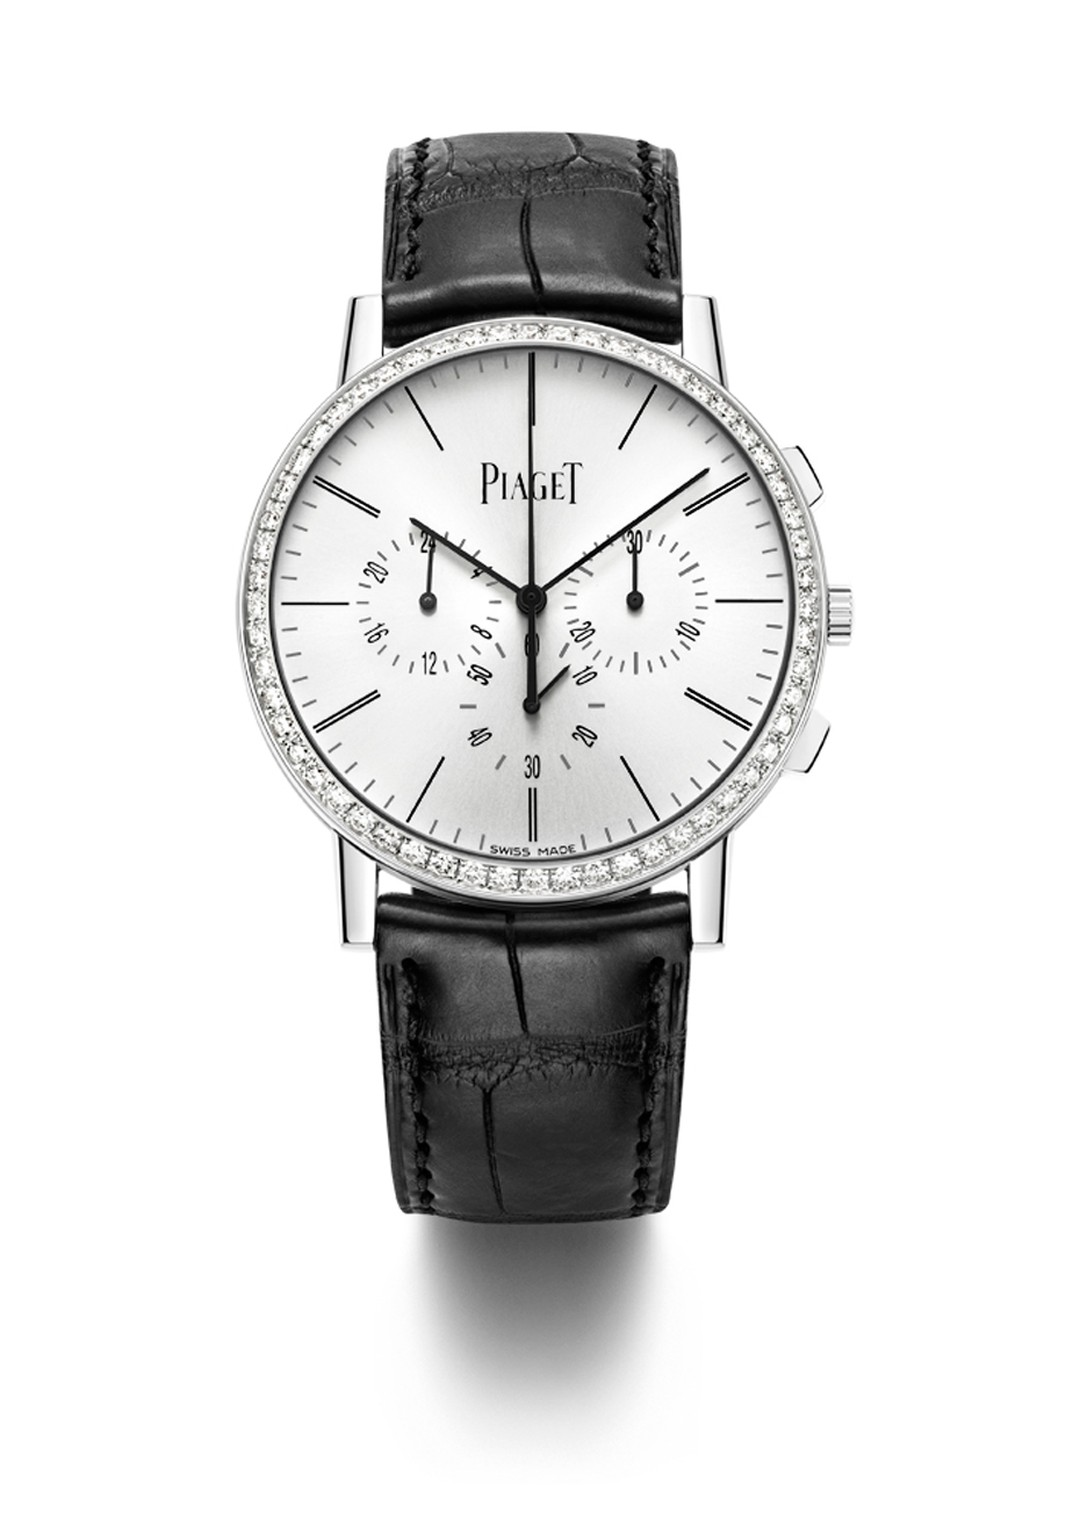 The Piaget Altiplano Chronograph will also be available in a white gold model set with 56 brilliant-cut diamonds on the bezel.